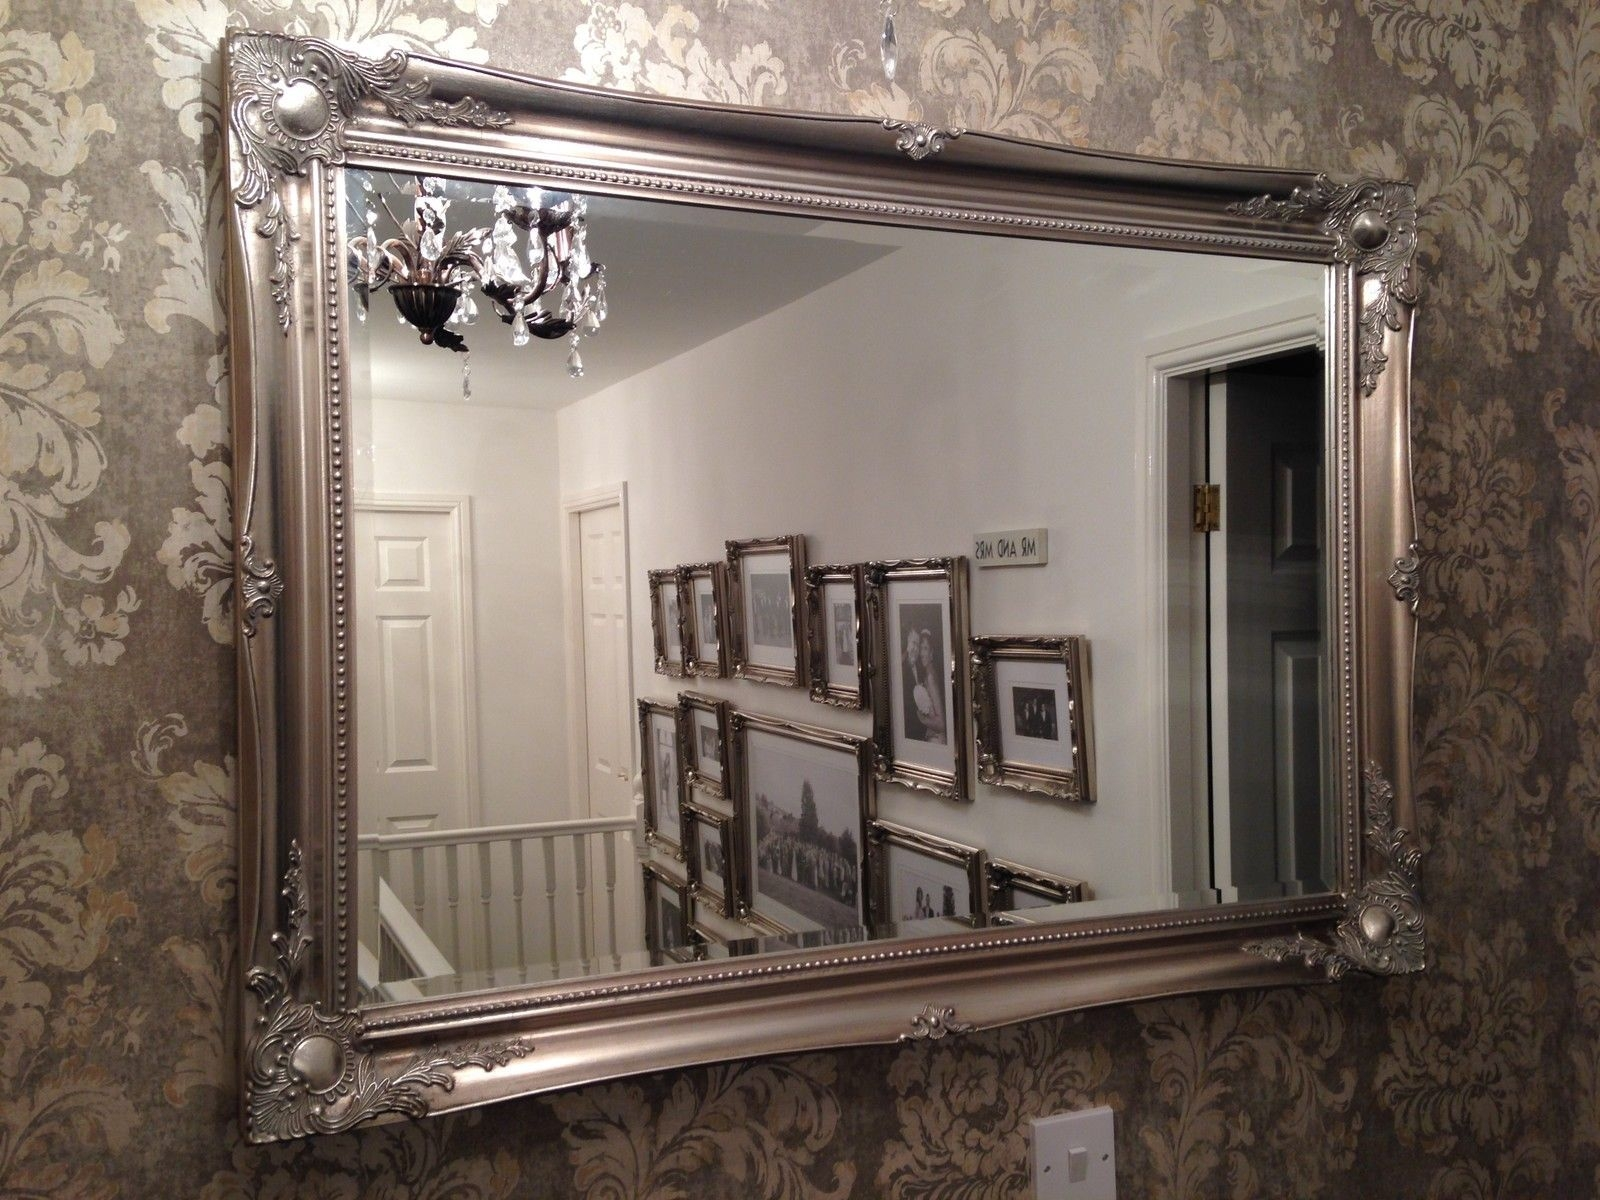 Large Silver Wall Mirror Wall Shelves Throughout Large Ornate Wall Mirrors (View 2 of 15)